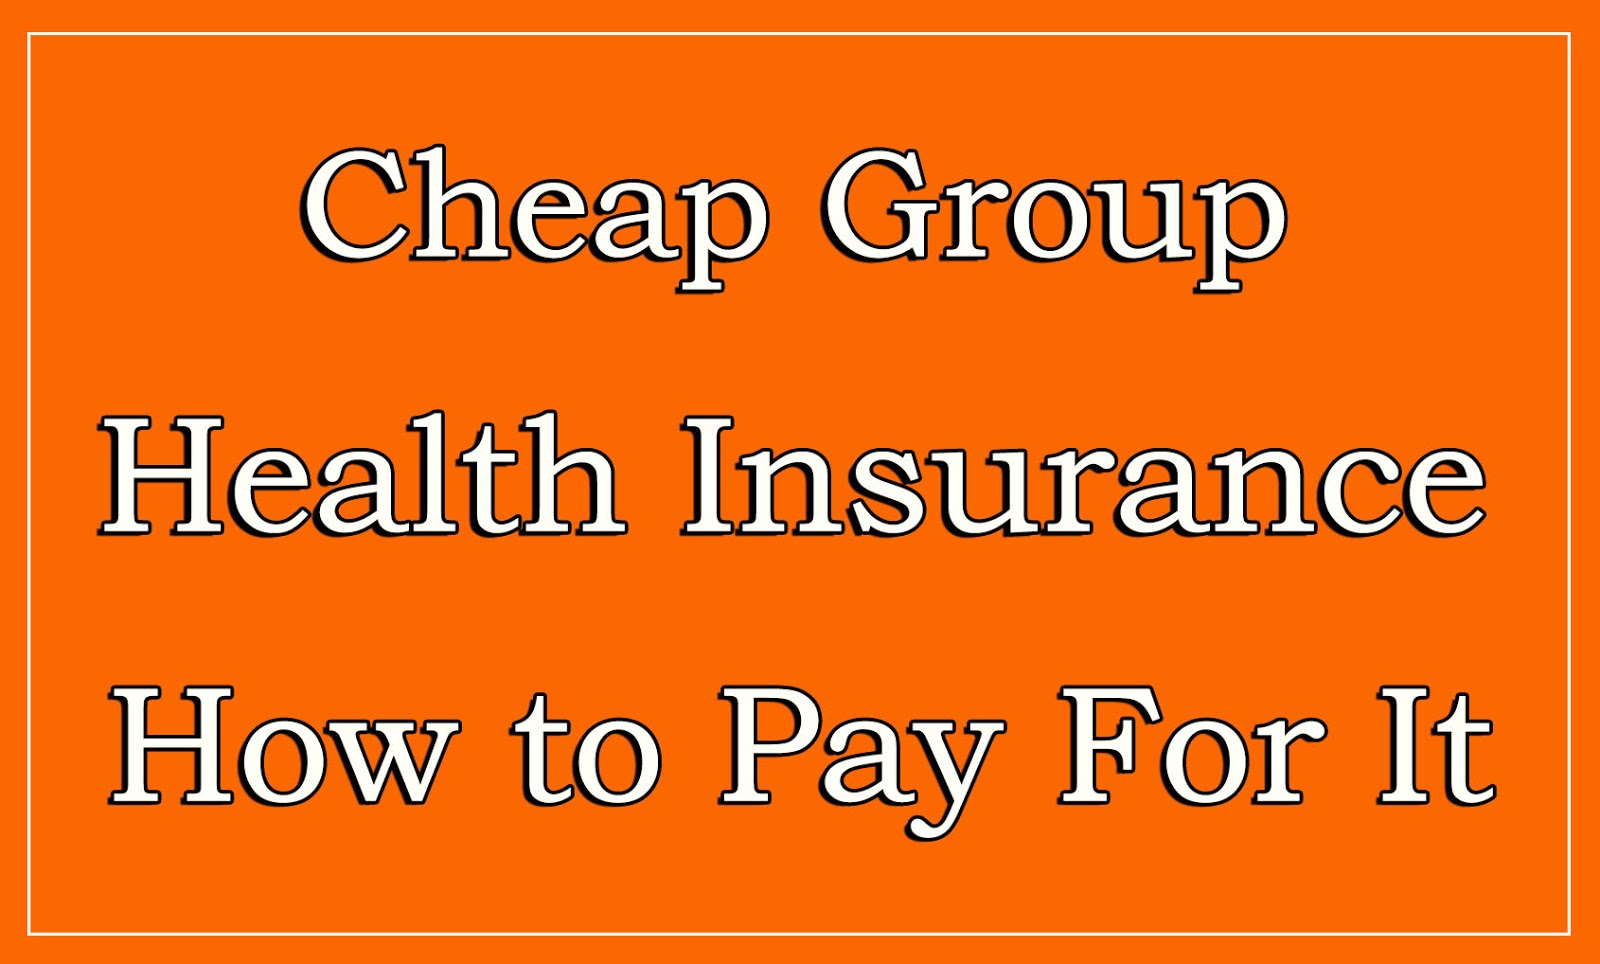 Cheap Health Insurance >> Cheap Group Health Insurance How To Pay For It